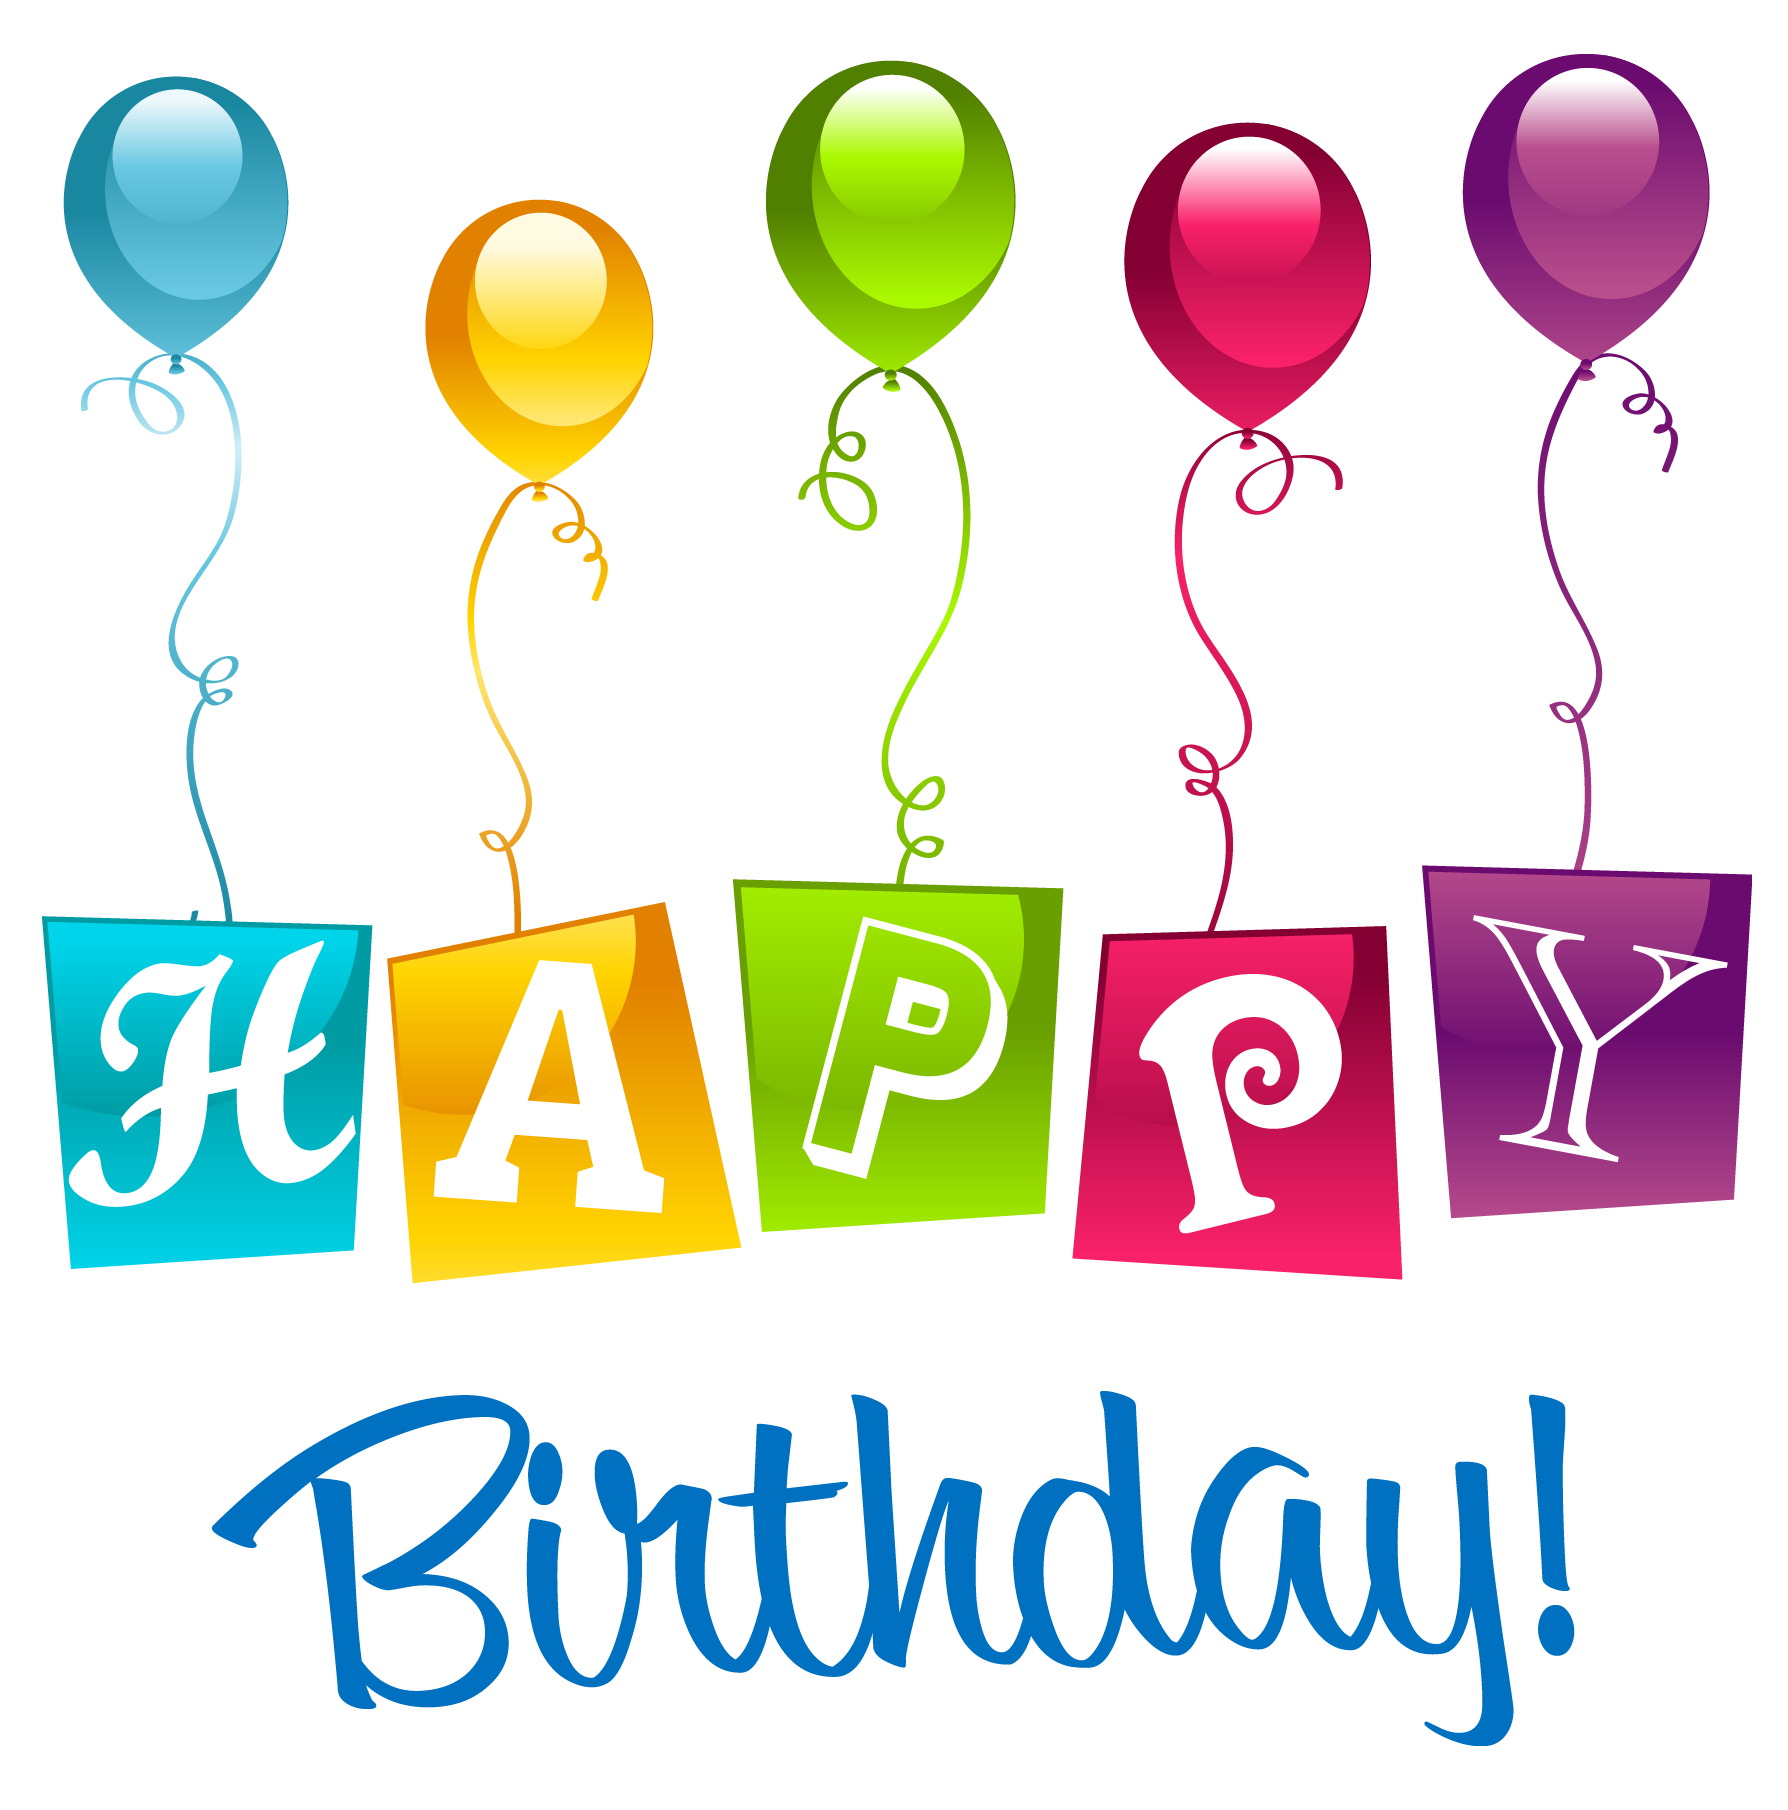 Png picture wishes pinterest. Person clipart happy birthday